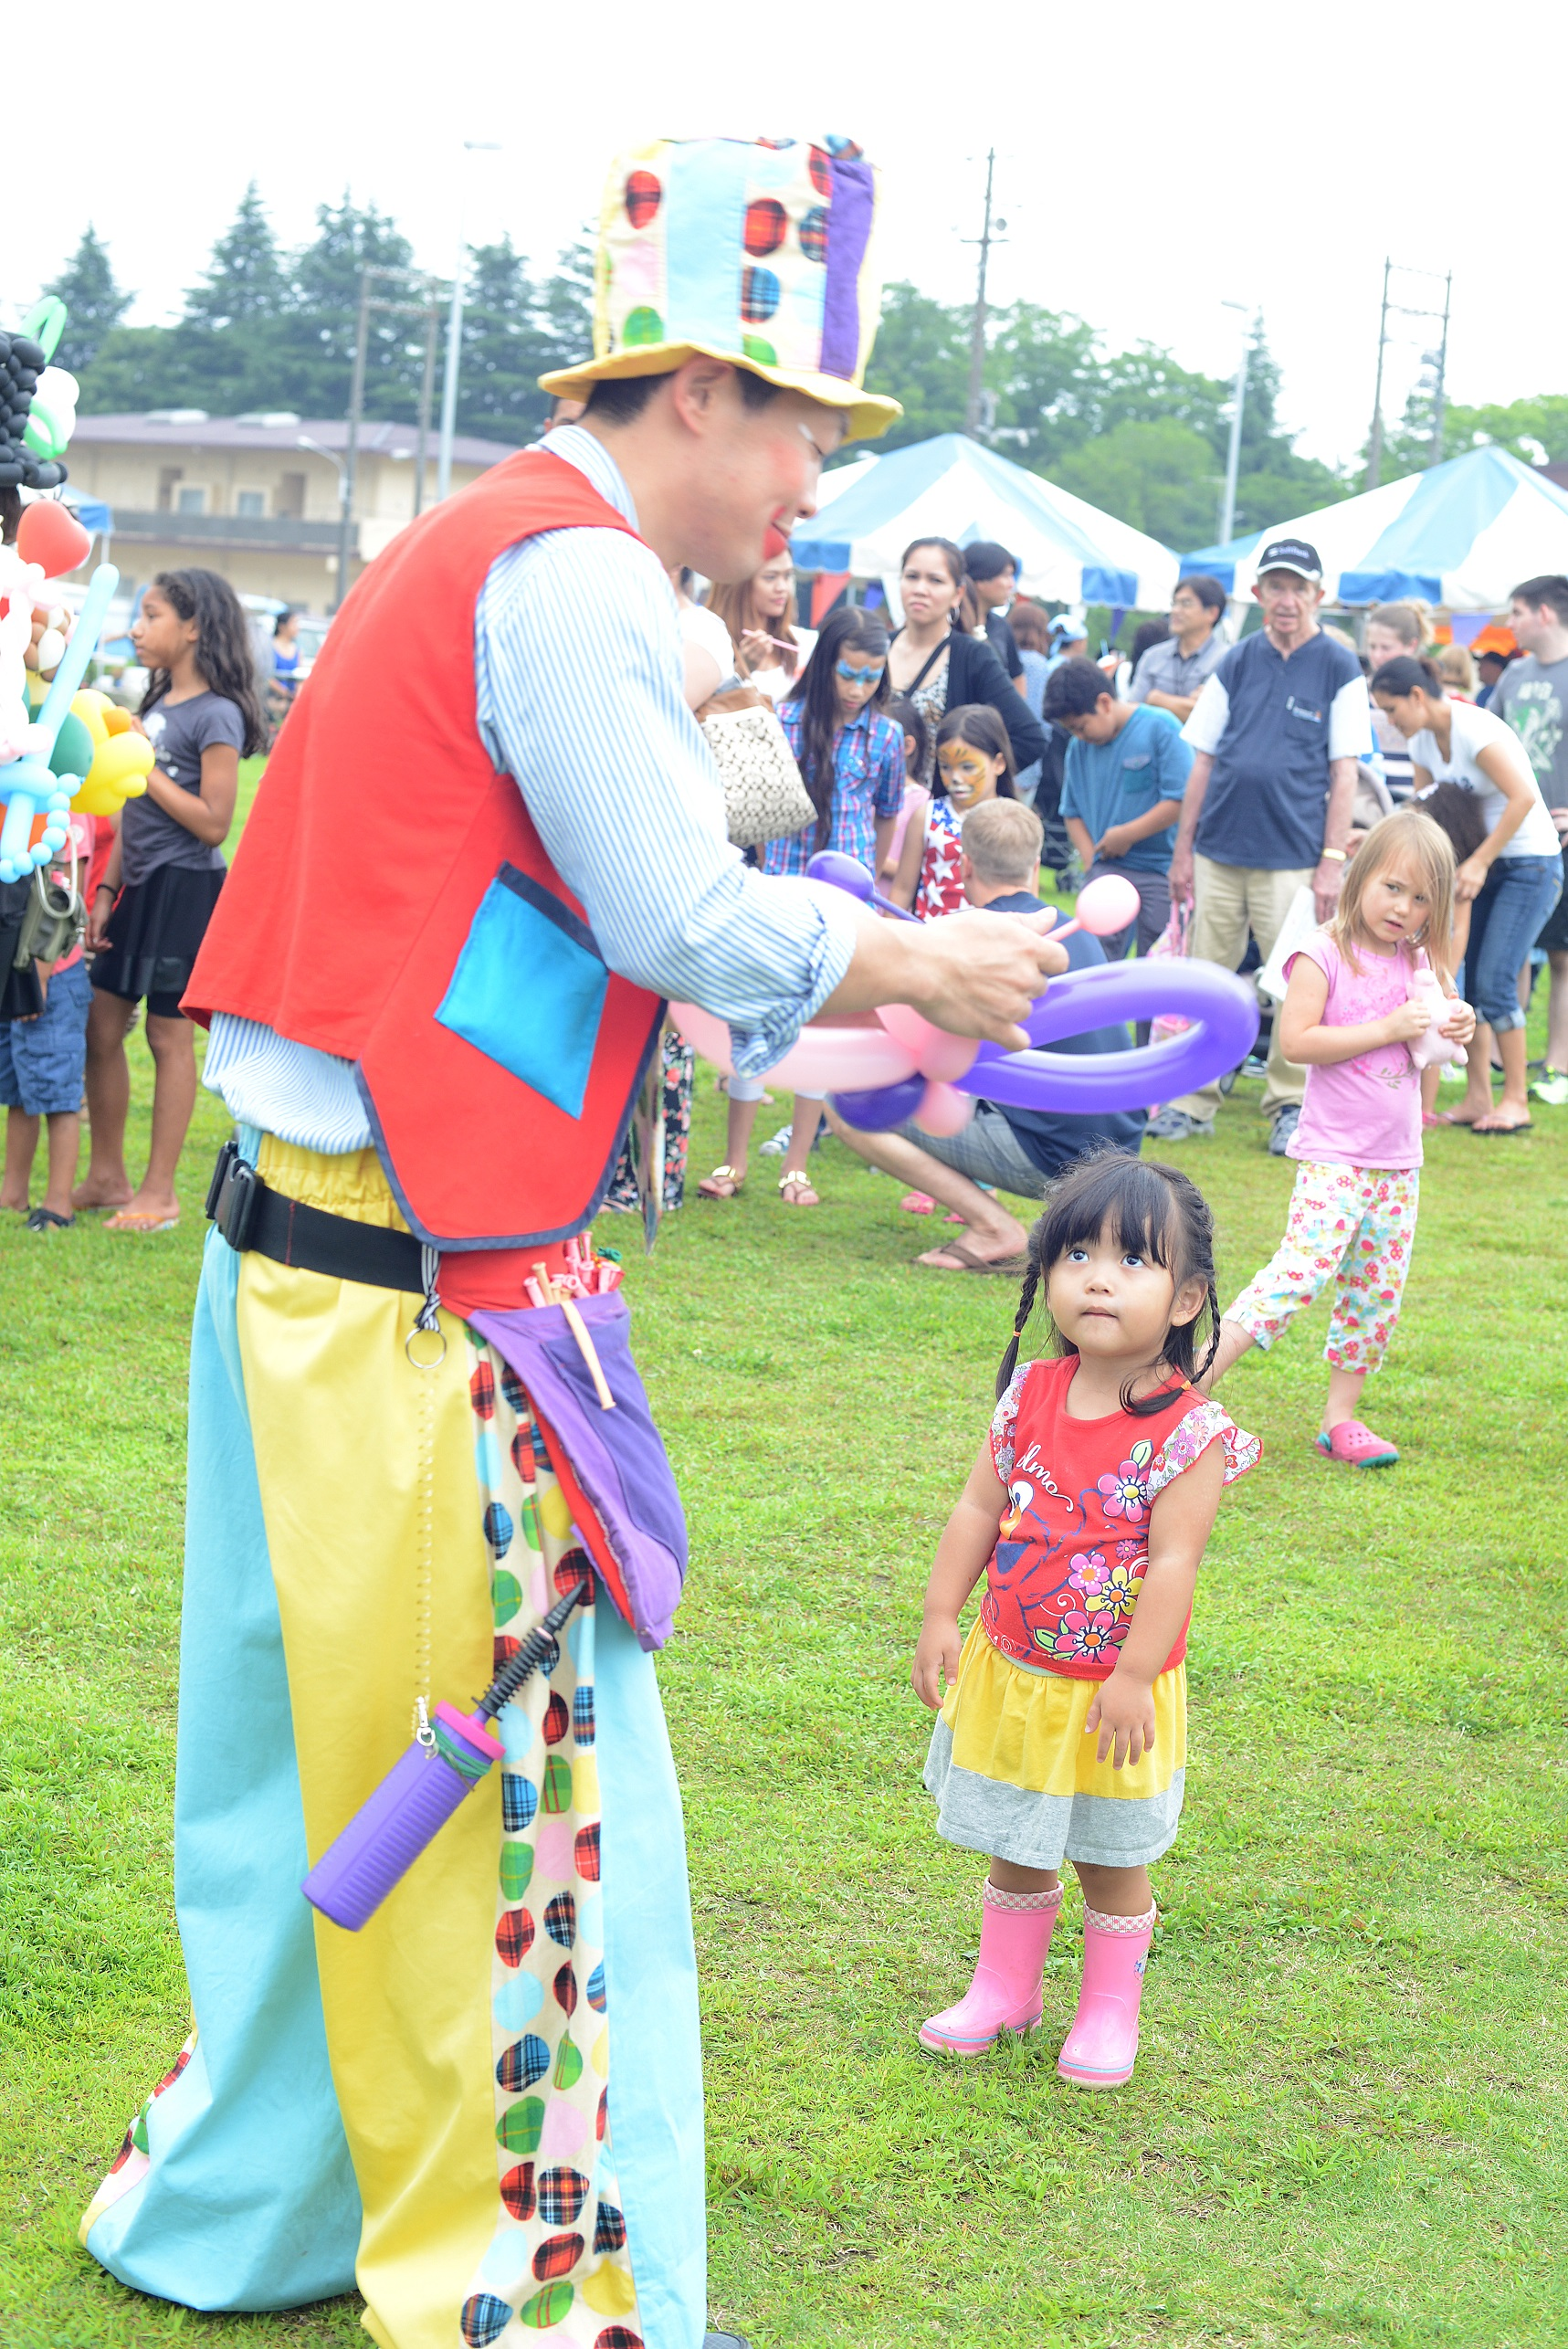 A clown shapes a pair of balloon wings for a child during Celebrate America at Yokota Air Base, Japan, July 2, 2015. Yokota residents gathered together to celebrate Independence Day with live music, food and fireworks. (U.S. Air Force photo by Airman 1st Class David C. Danford/Released)